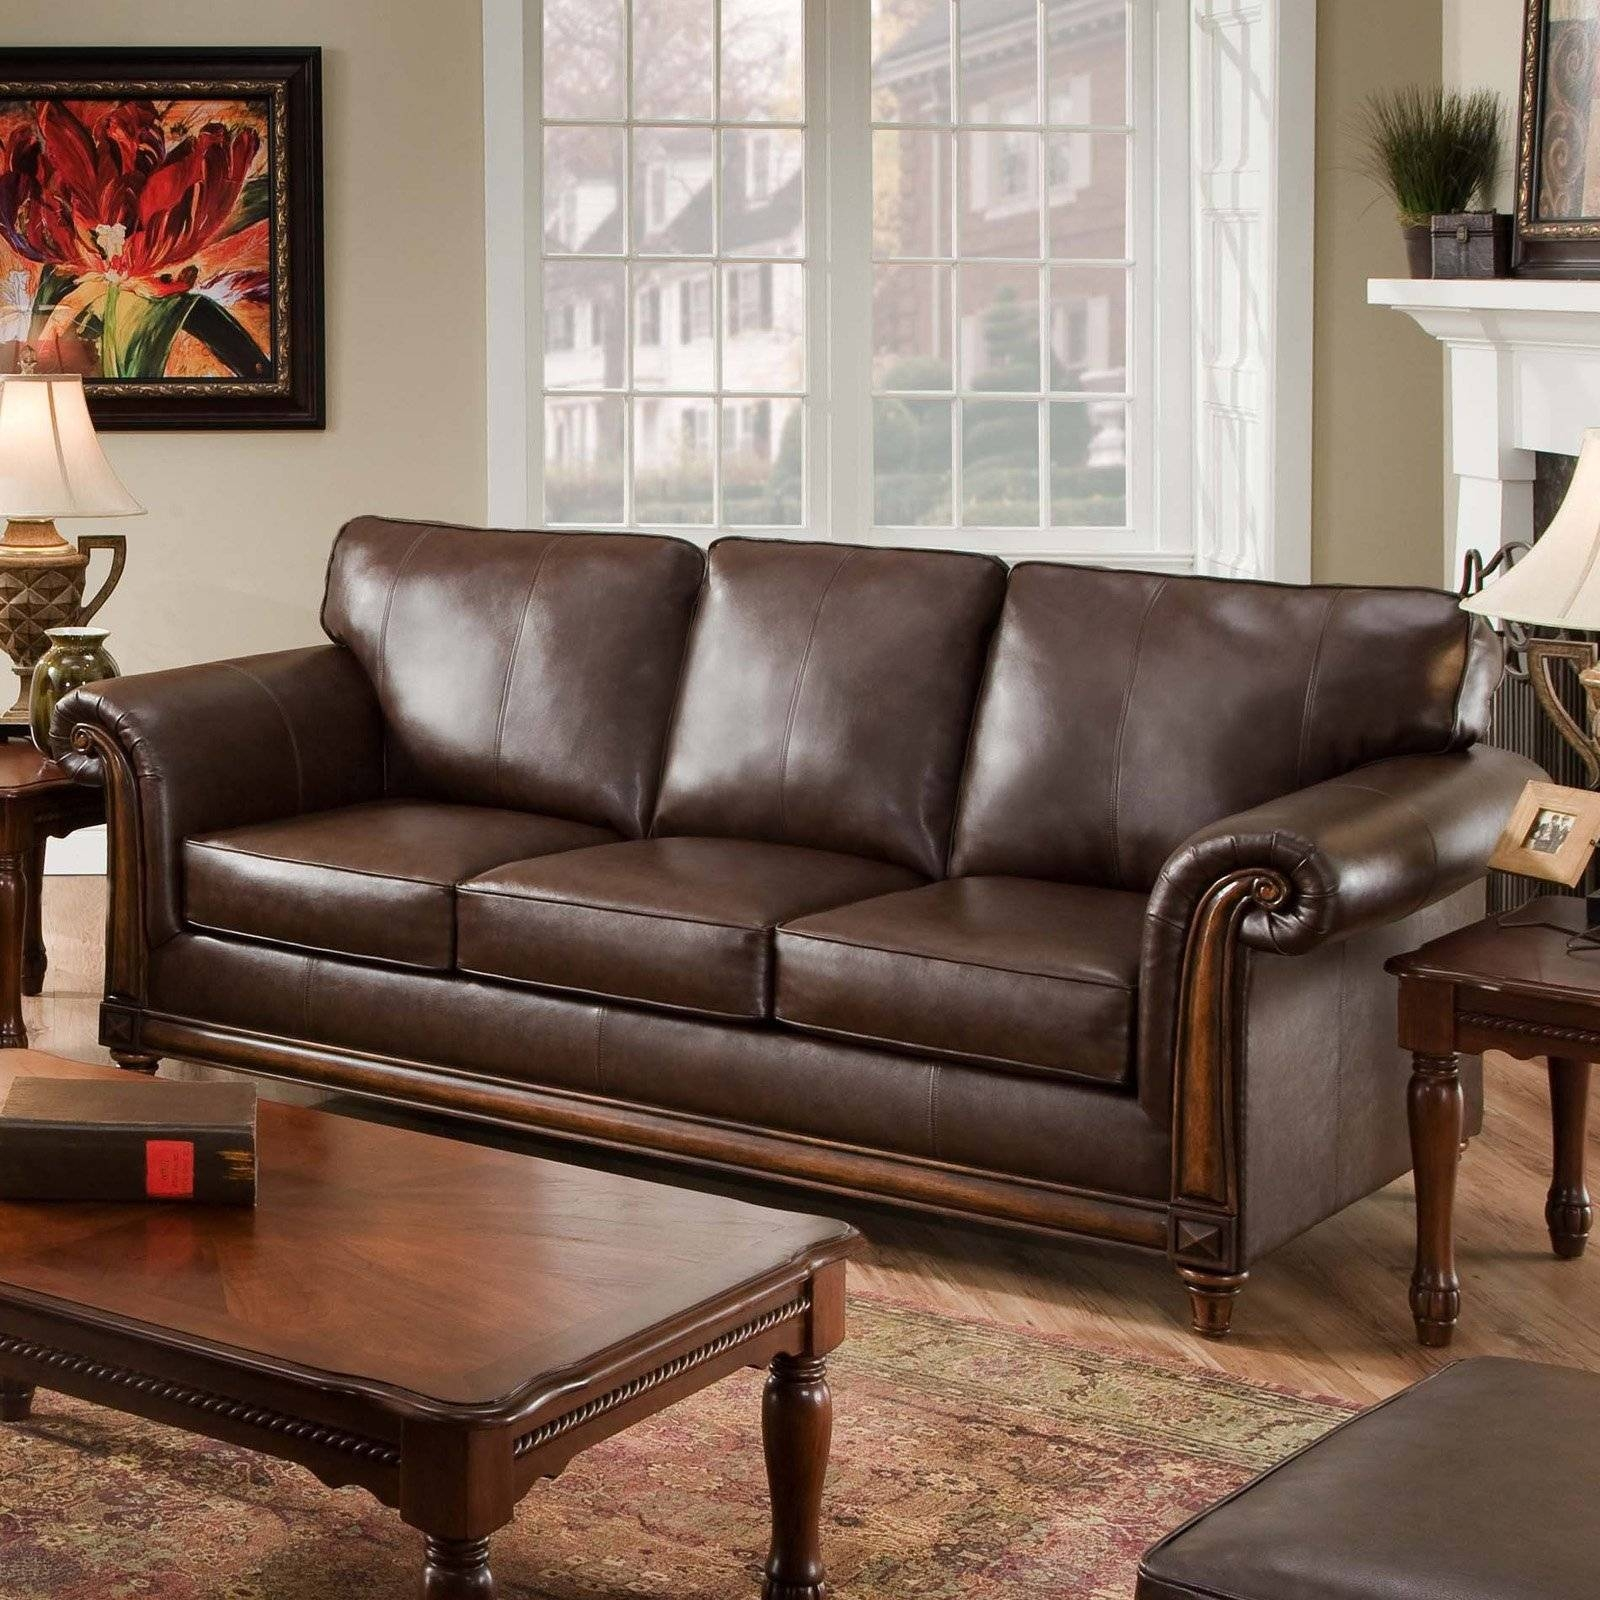 Furniture: Simmons Sofa For Comfortable Seating — Threestems For Simmons Sleeper Sofas (View 3 of 15)